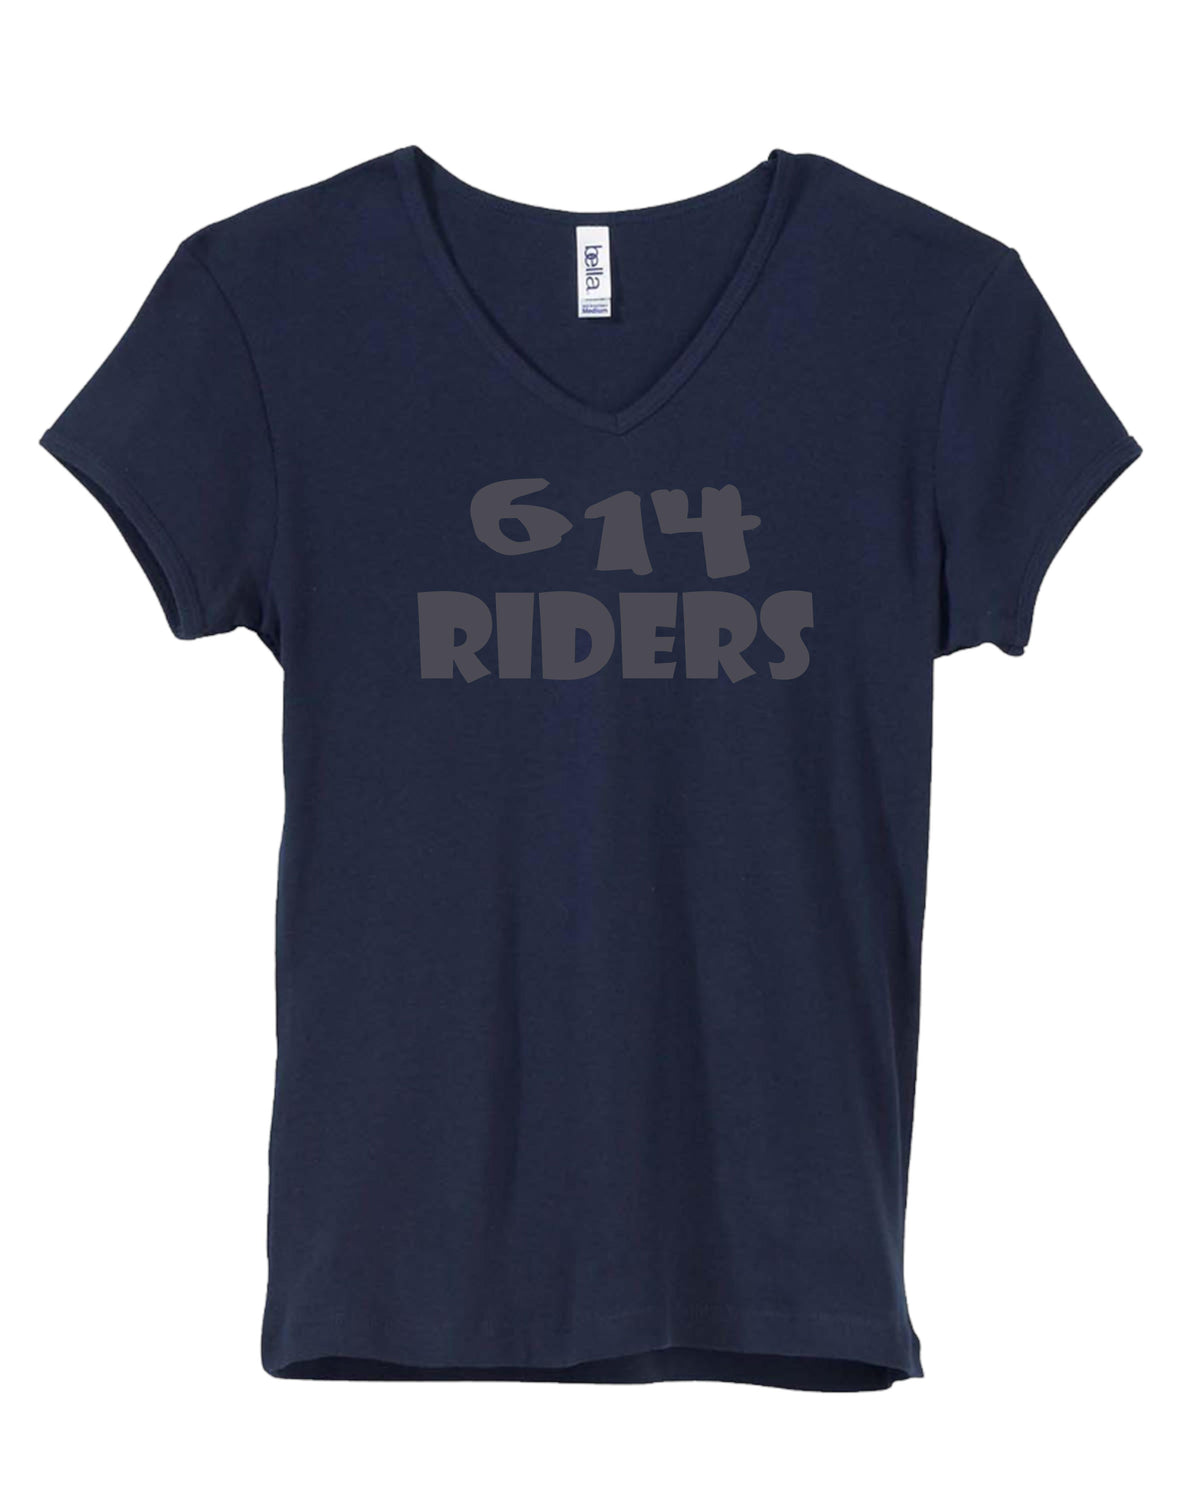 614 Riders Women's V-Neck